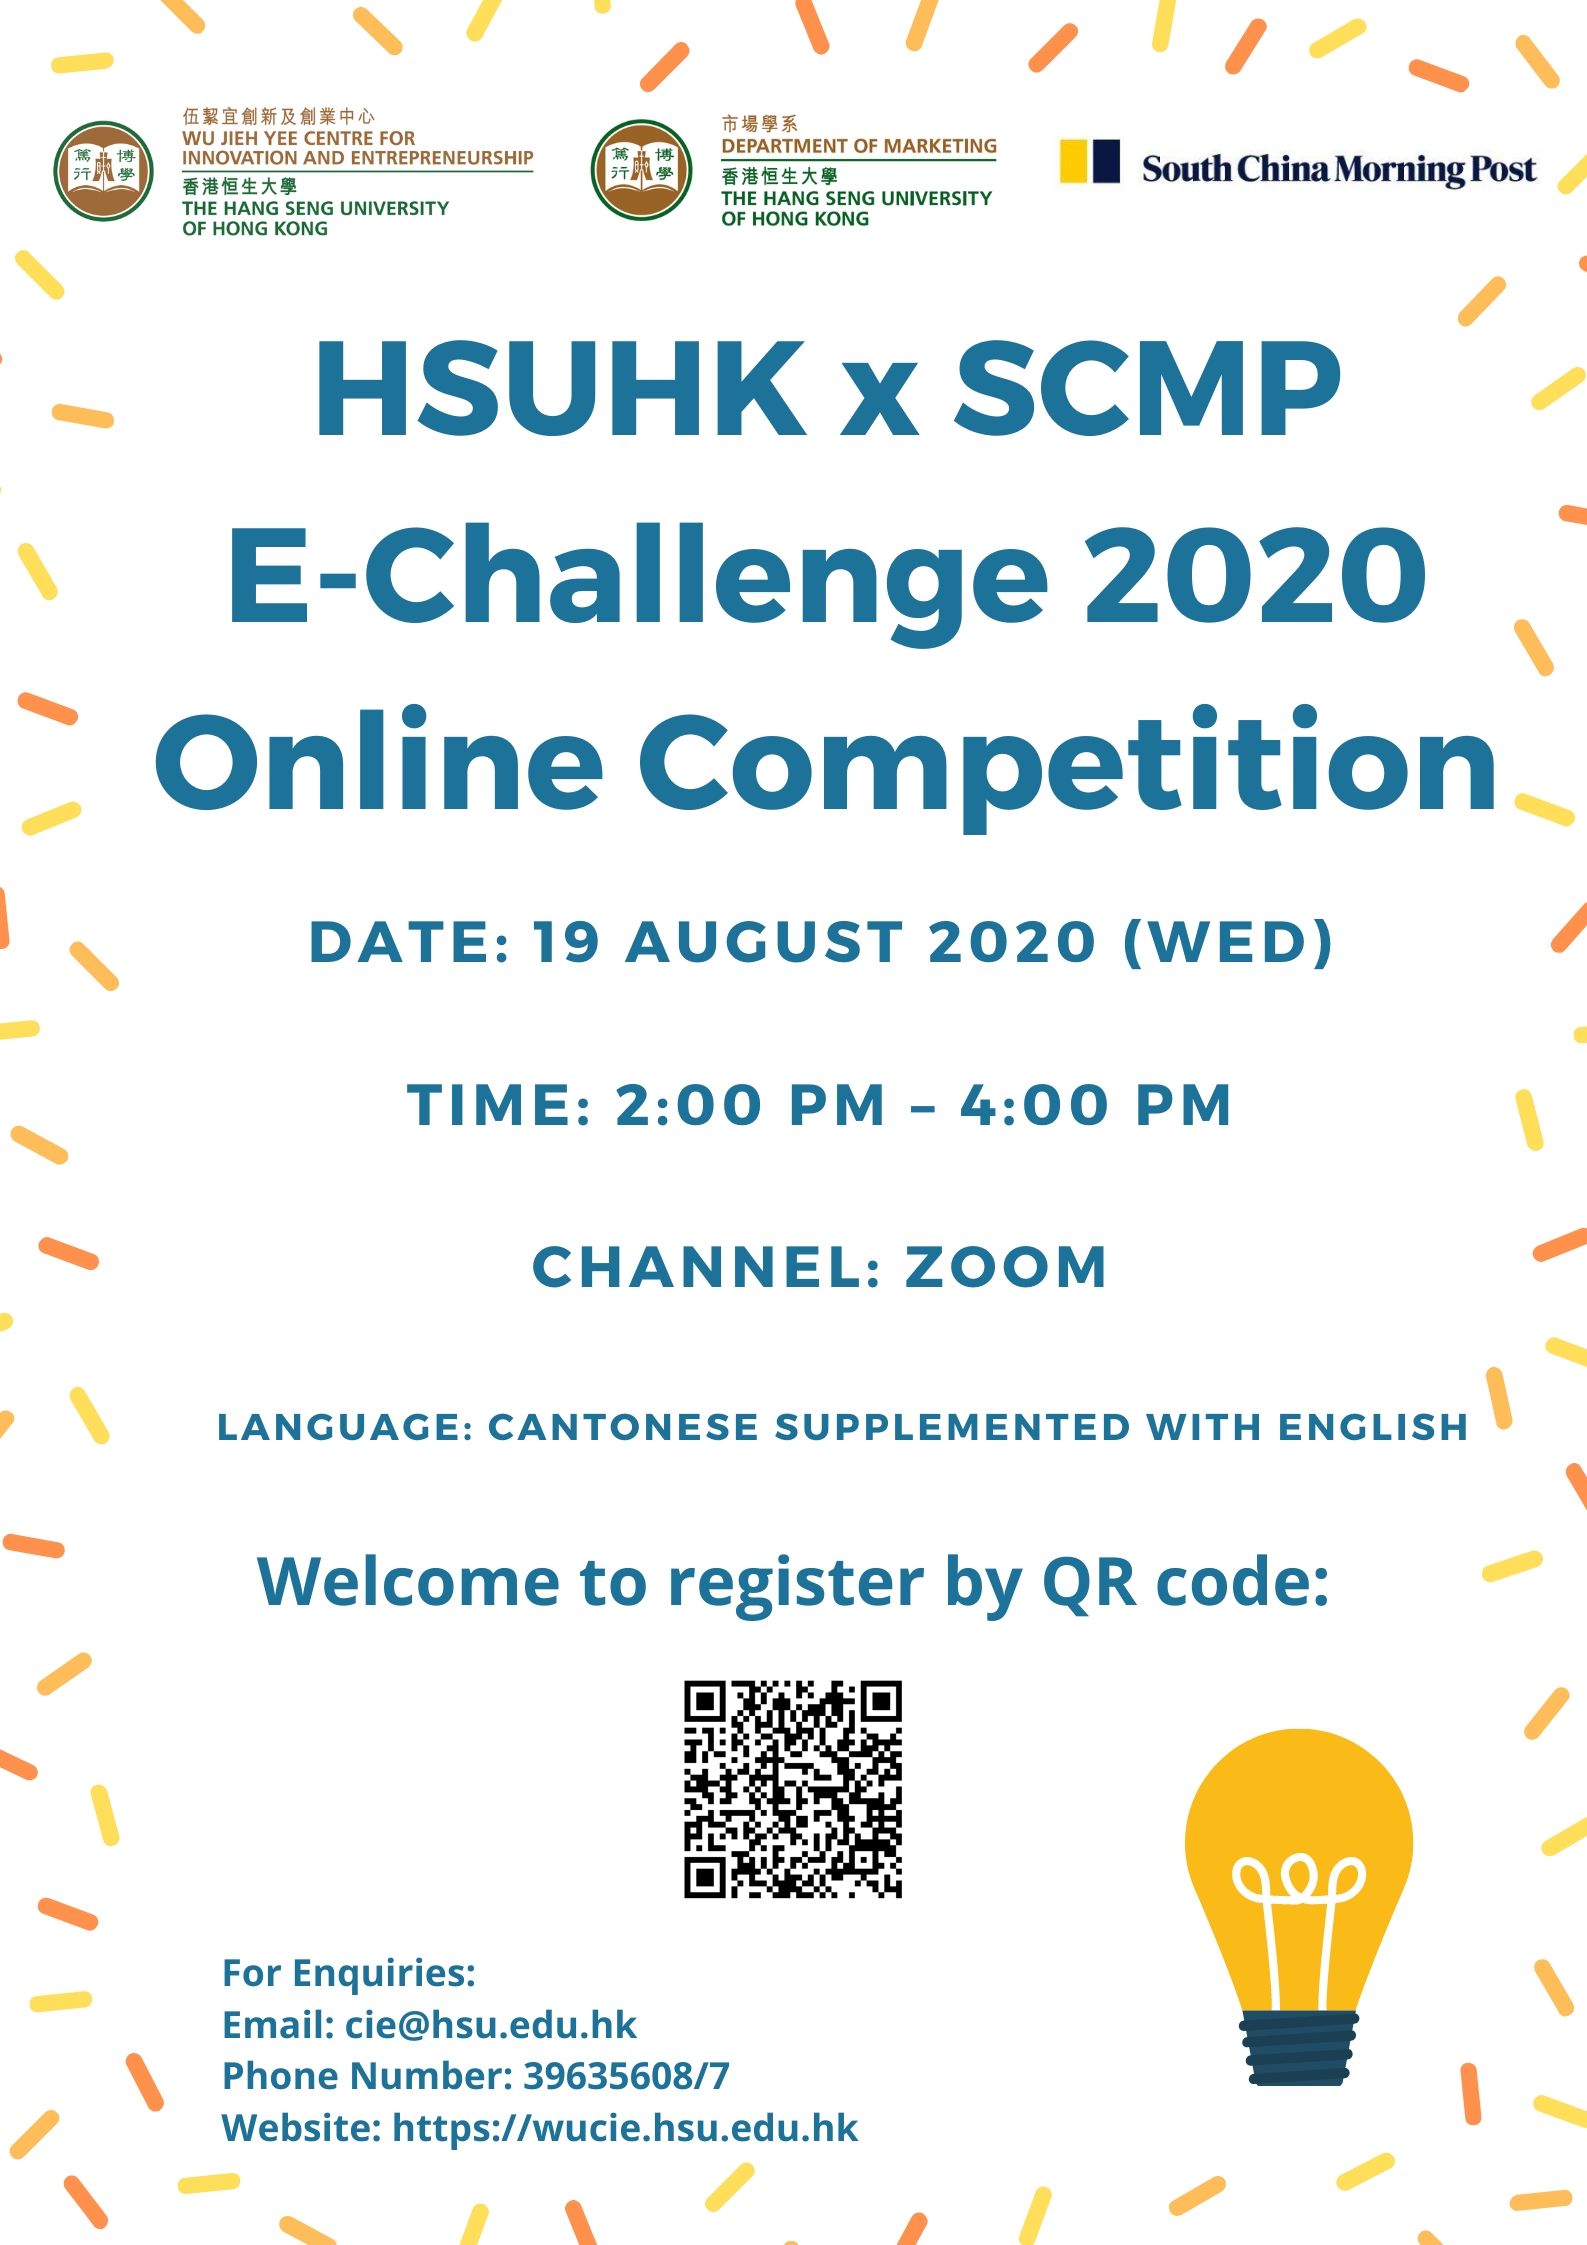 Poster - HSUHK x SCMP E-Challenge 2020 Online Competition